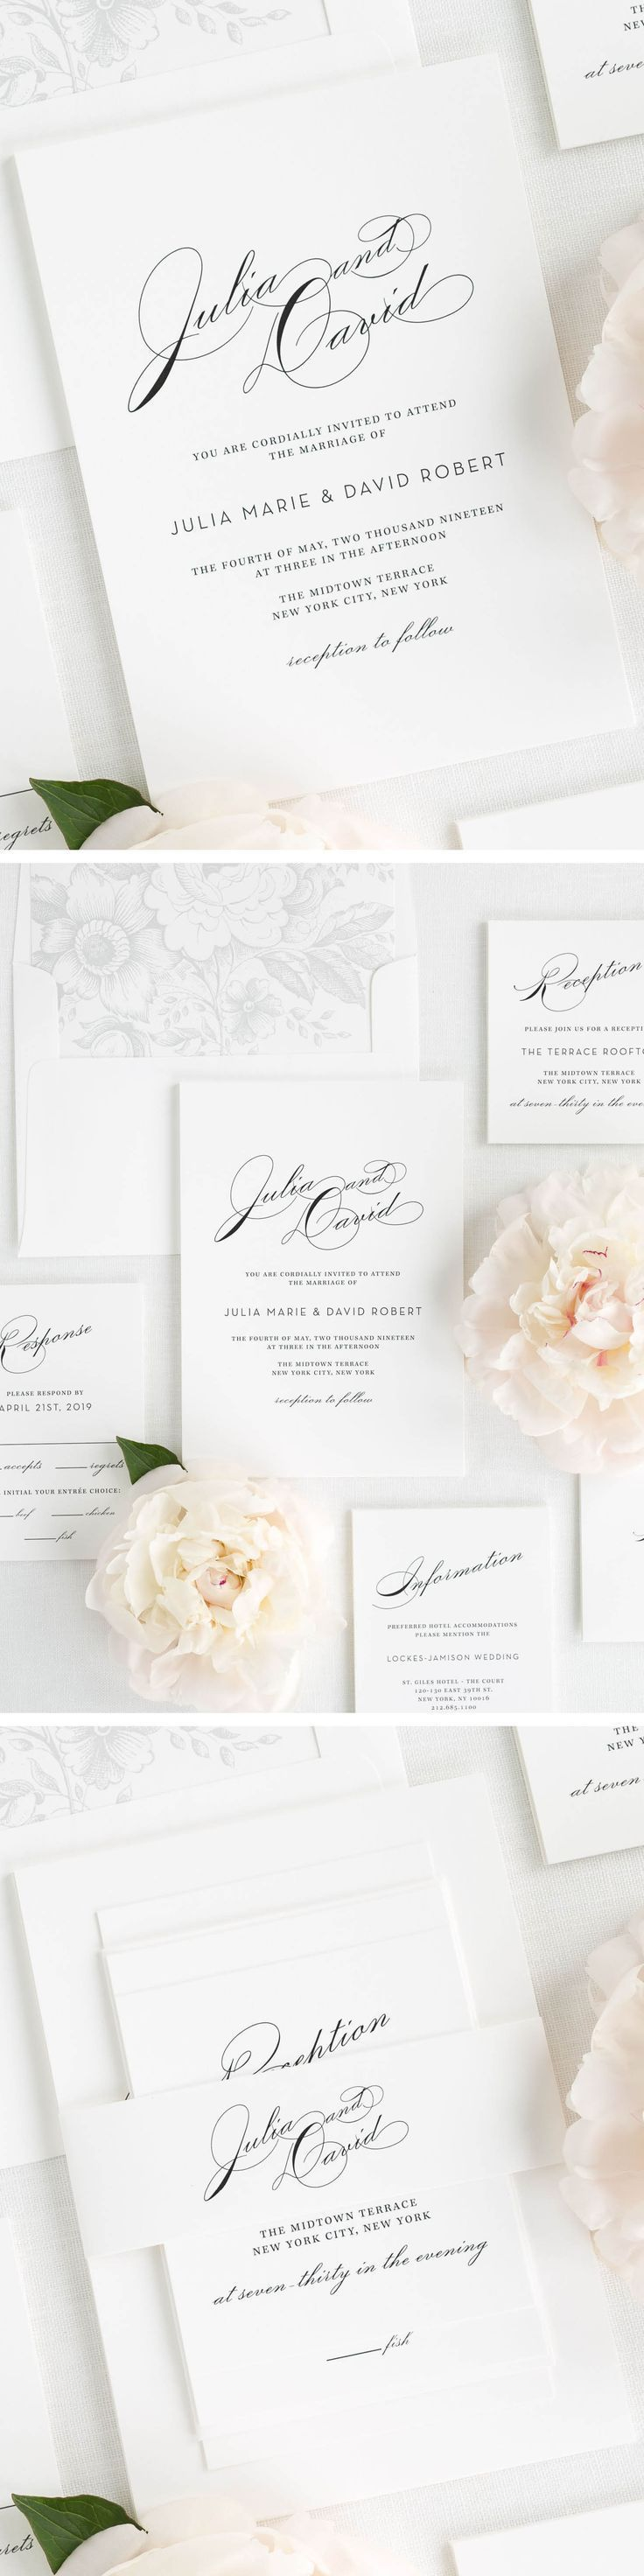 Vintage glam wedding invitations sophisticated wedding this sophisticated wedding invitation suite features large names in an elegant vintage script font shown monicamarmolfo Image collections